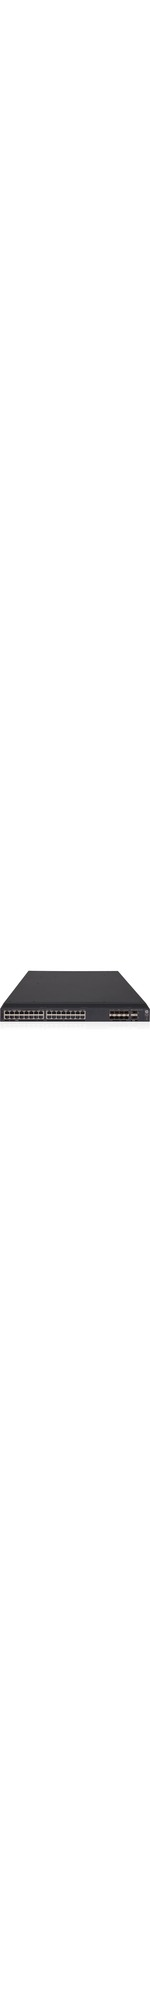 HP FlexFabric 5700-32XGT-8XG-2QSFPplus 32 Ports Manageable Layer 3 Switch